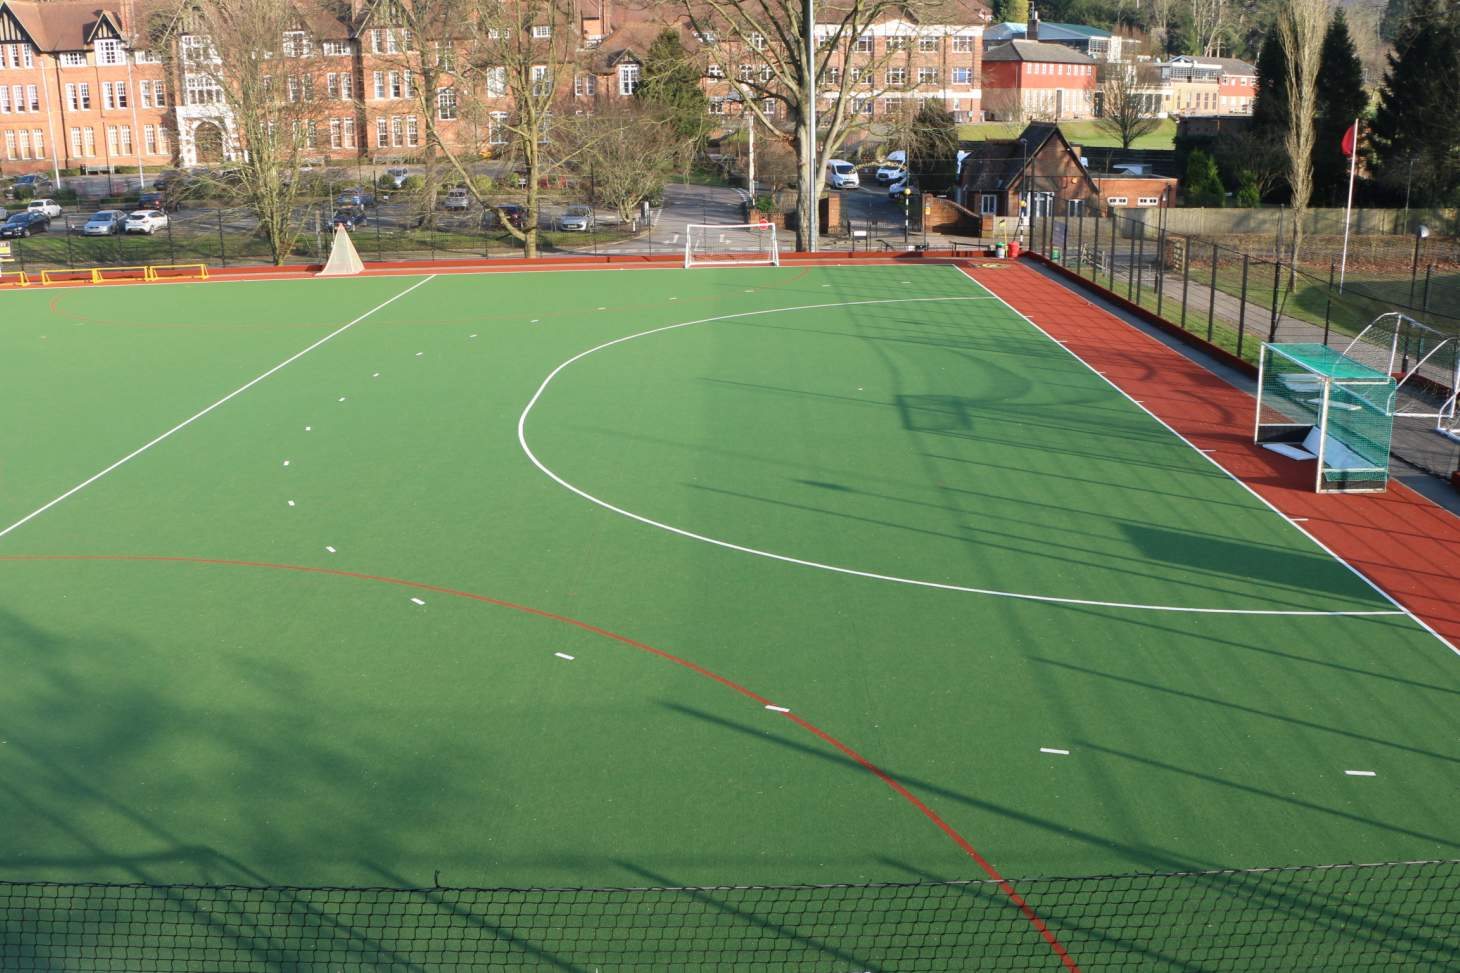 Caterham School Sports Centre 11 a side | Astroturf football pitch